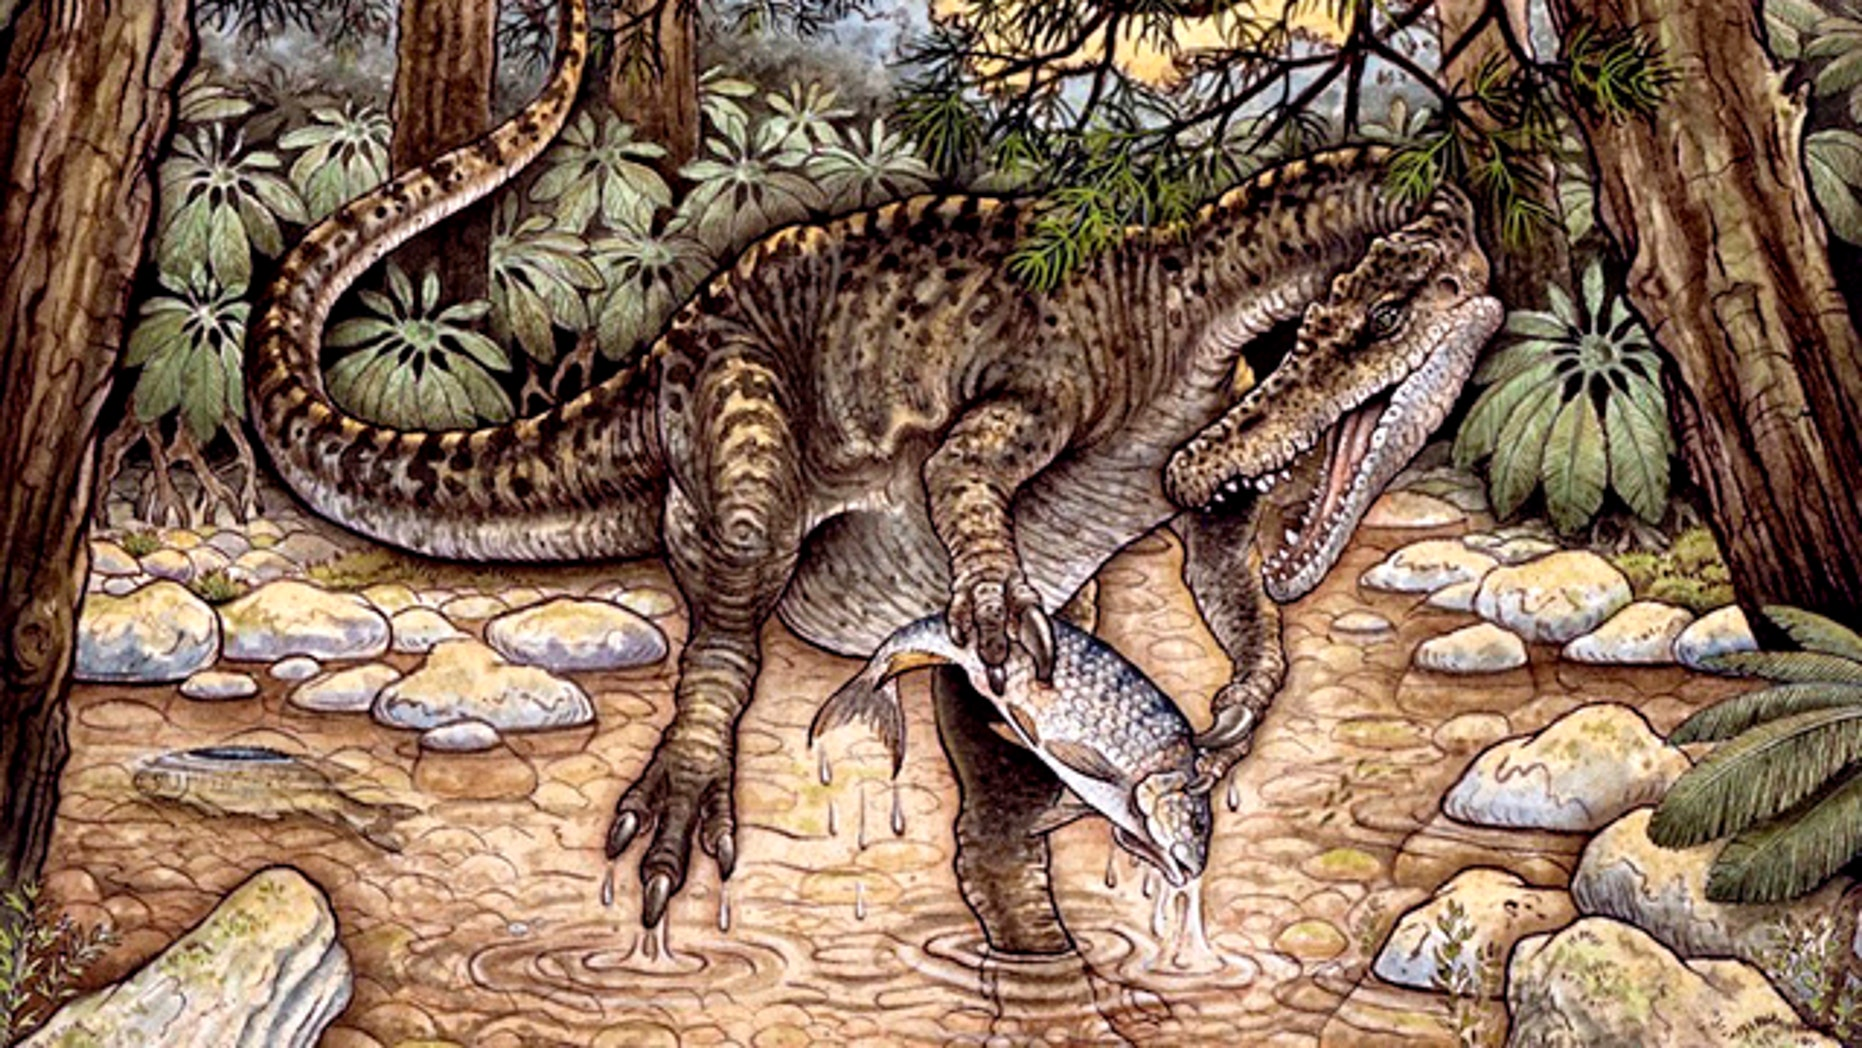 The spinatosaurid Baryonyx Walker roamed Europe during the Cretaceous. A close relative has now been found in Australia.